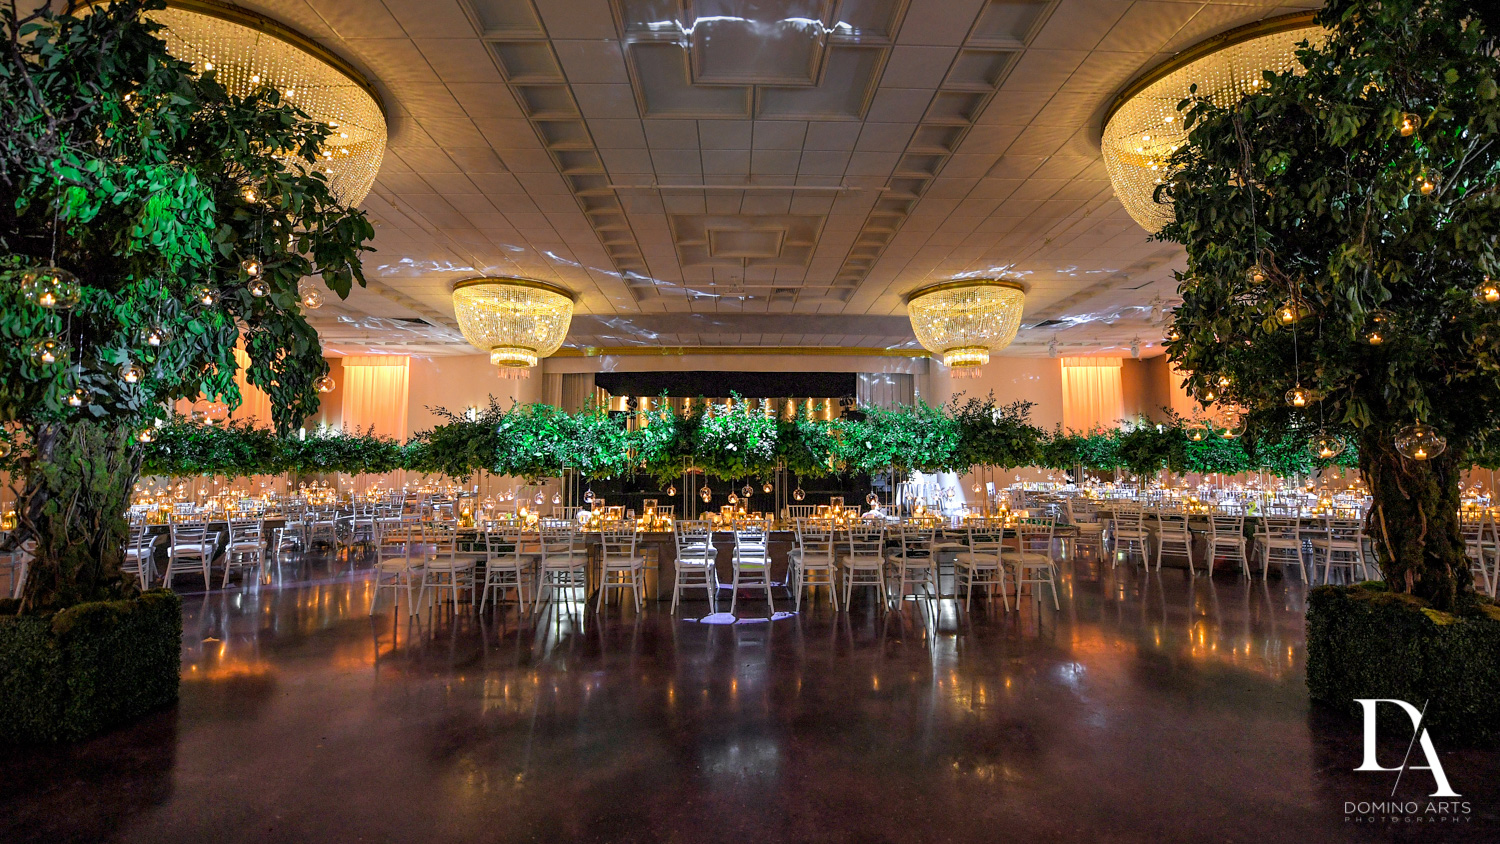 decor at Classic Miami Beach Wedding at Temple Emanu-El and Emanuel Luxury Venue by Domino Arts Photography